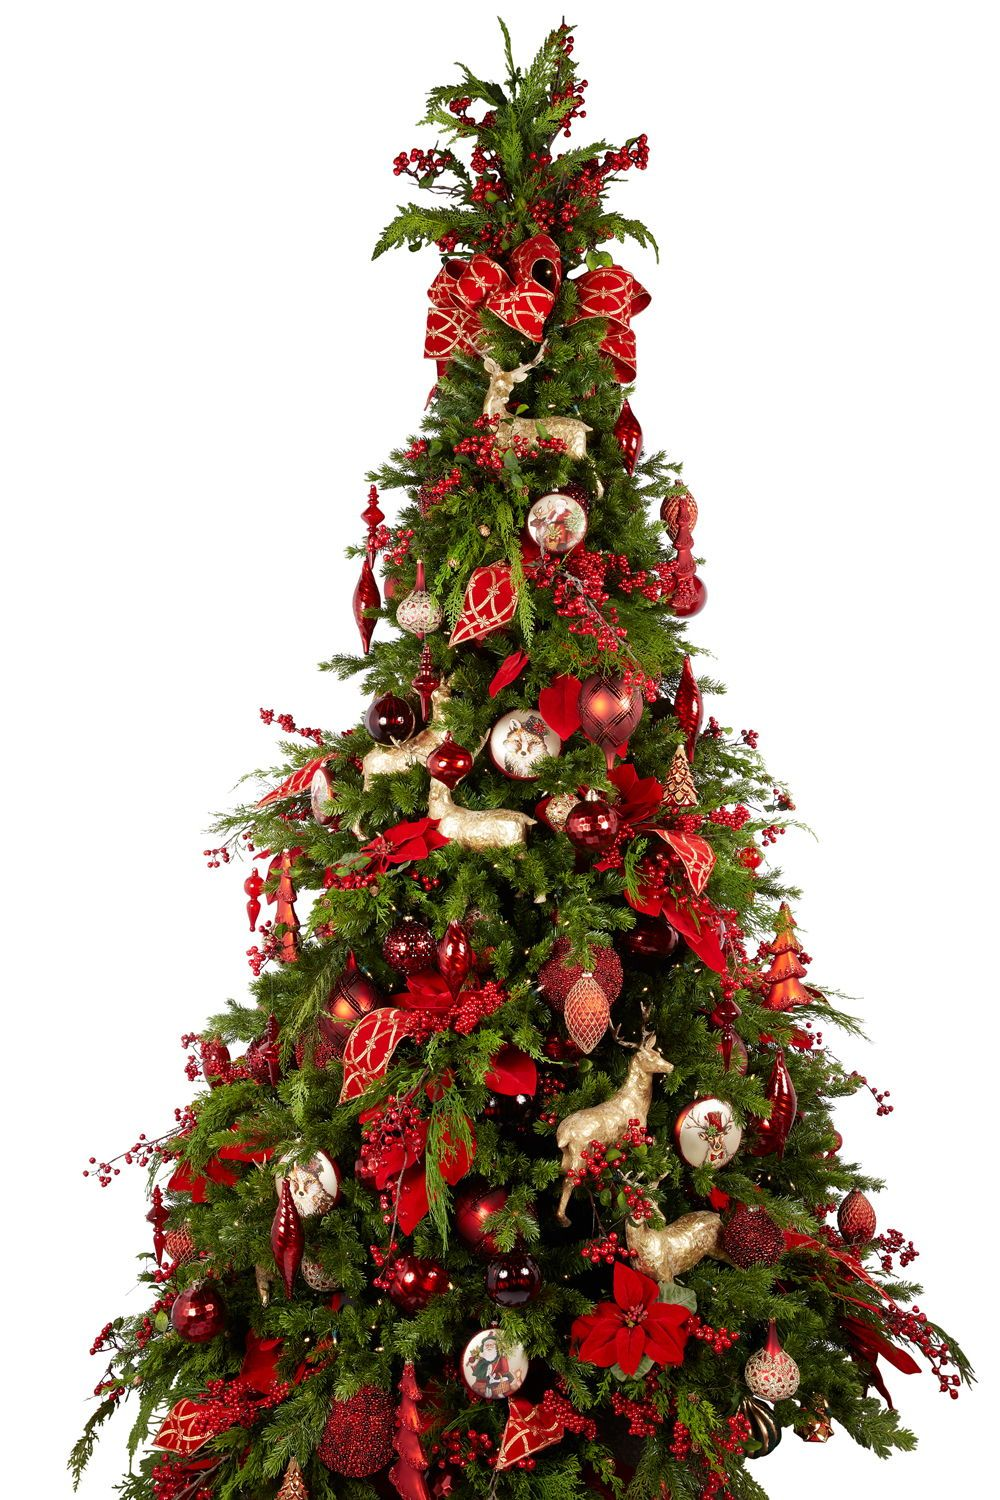 Wholesale Home Holiday Giftable Decor Melrose International In 2020 Christmas Tree Decorating Tips Holiday Christmas Tree Design